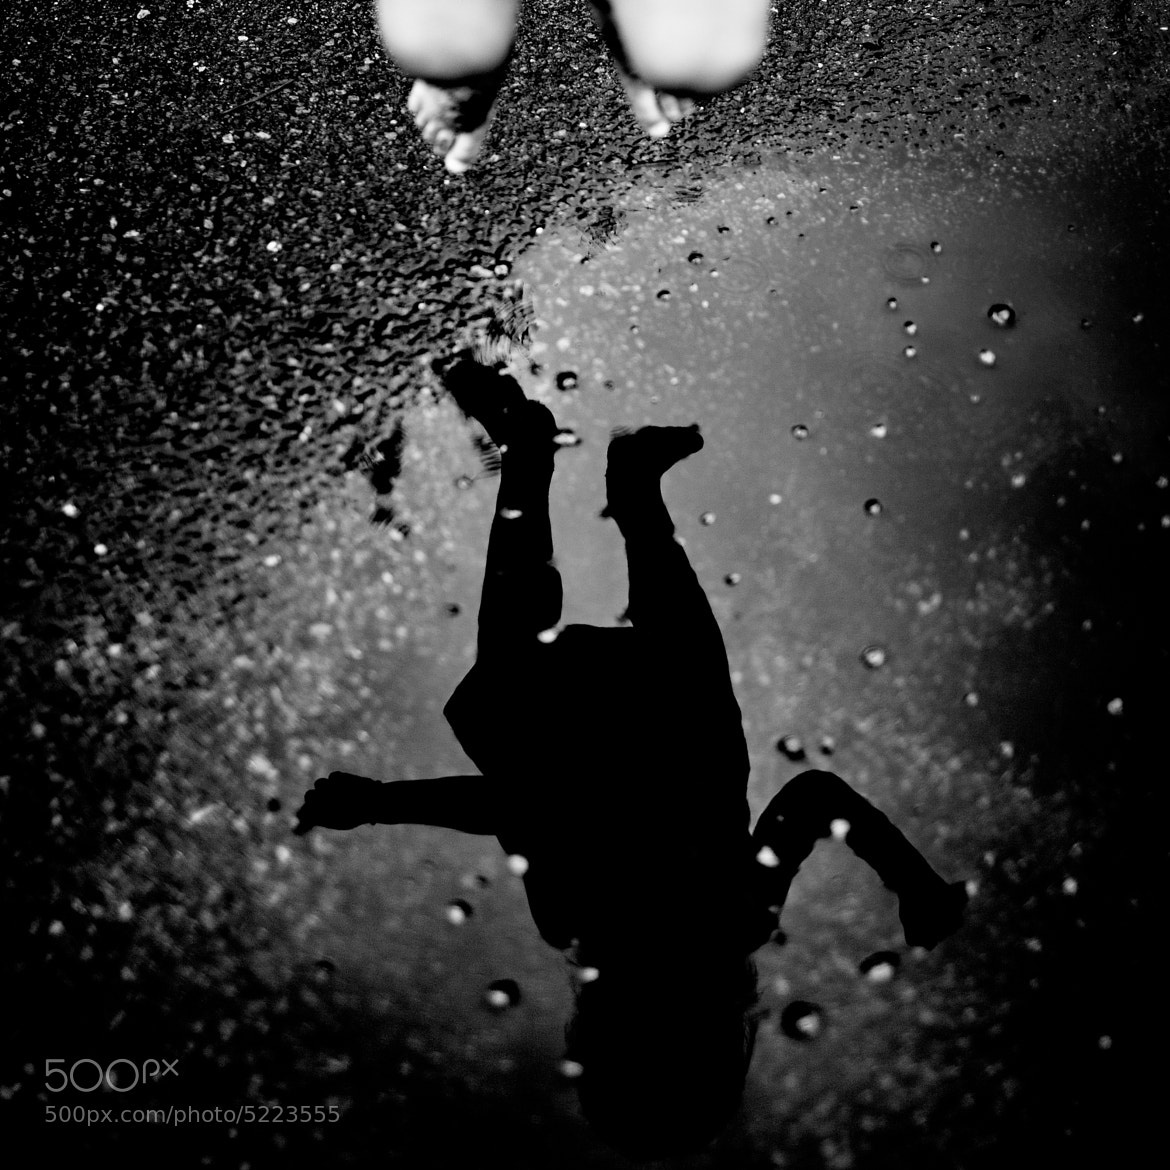 Photograph Le saut by Benoit COURTI on 500px